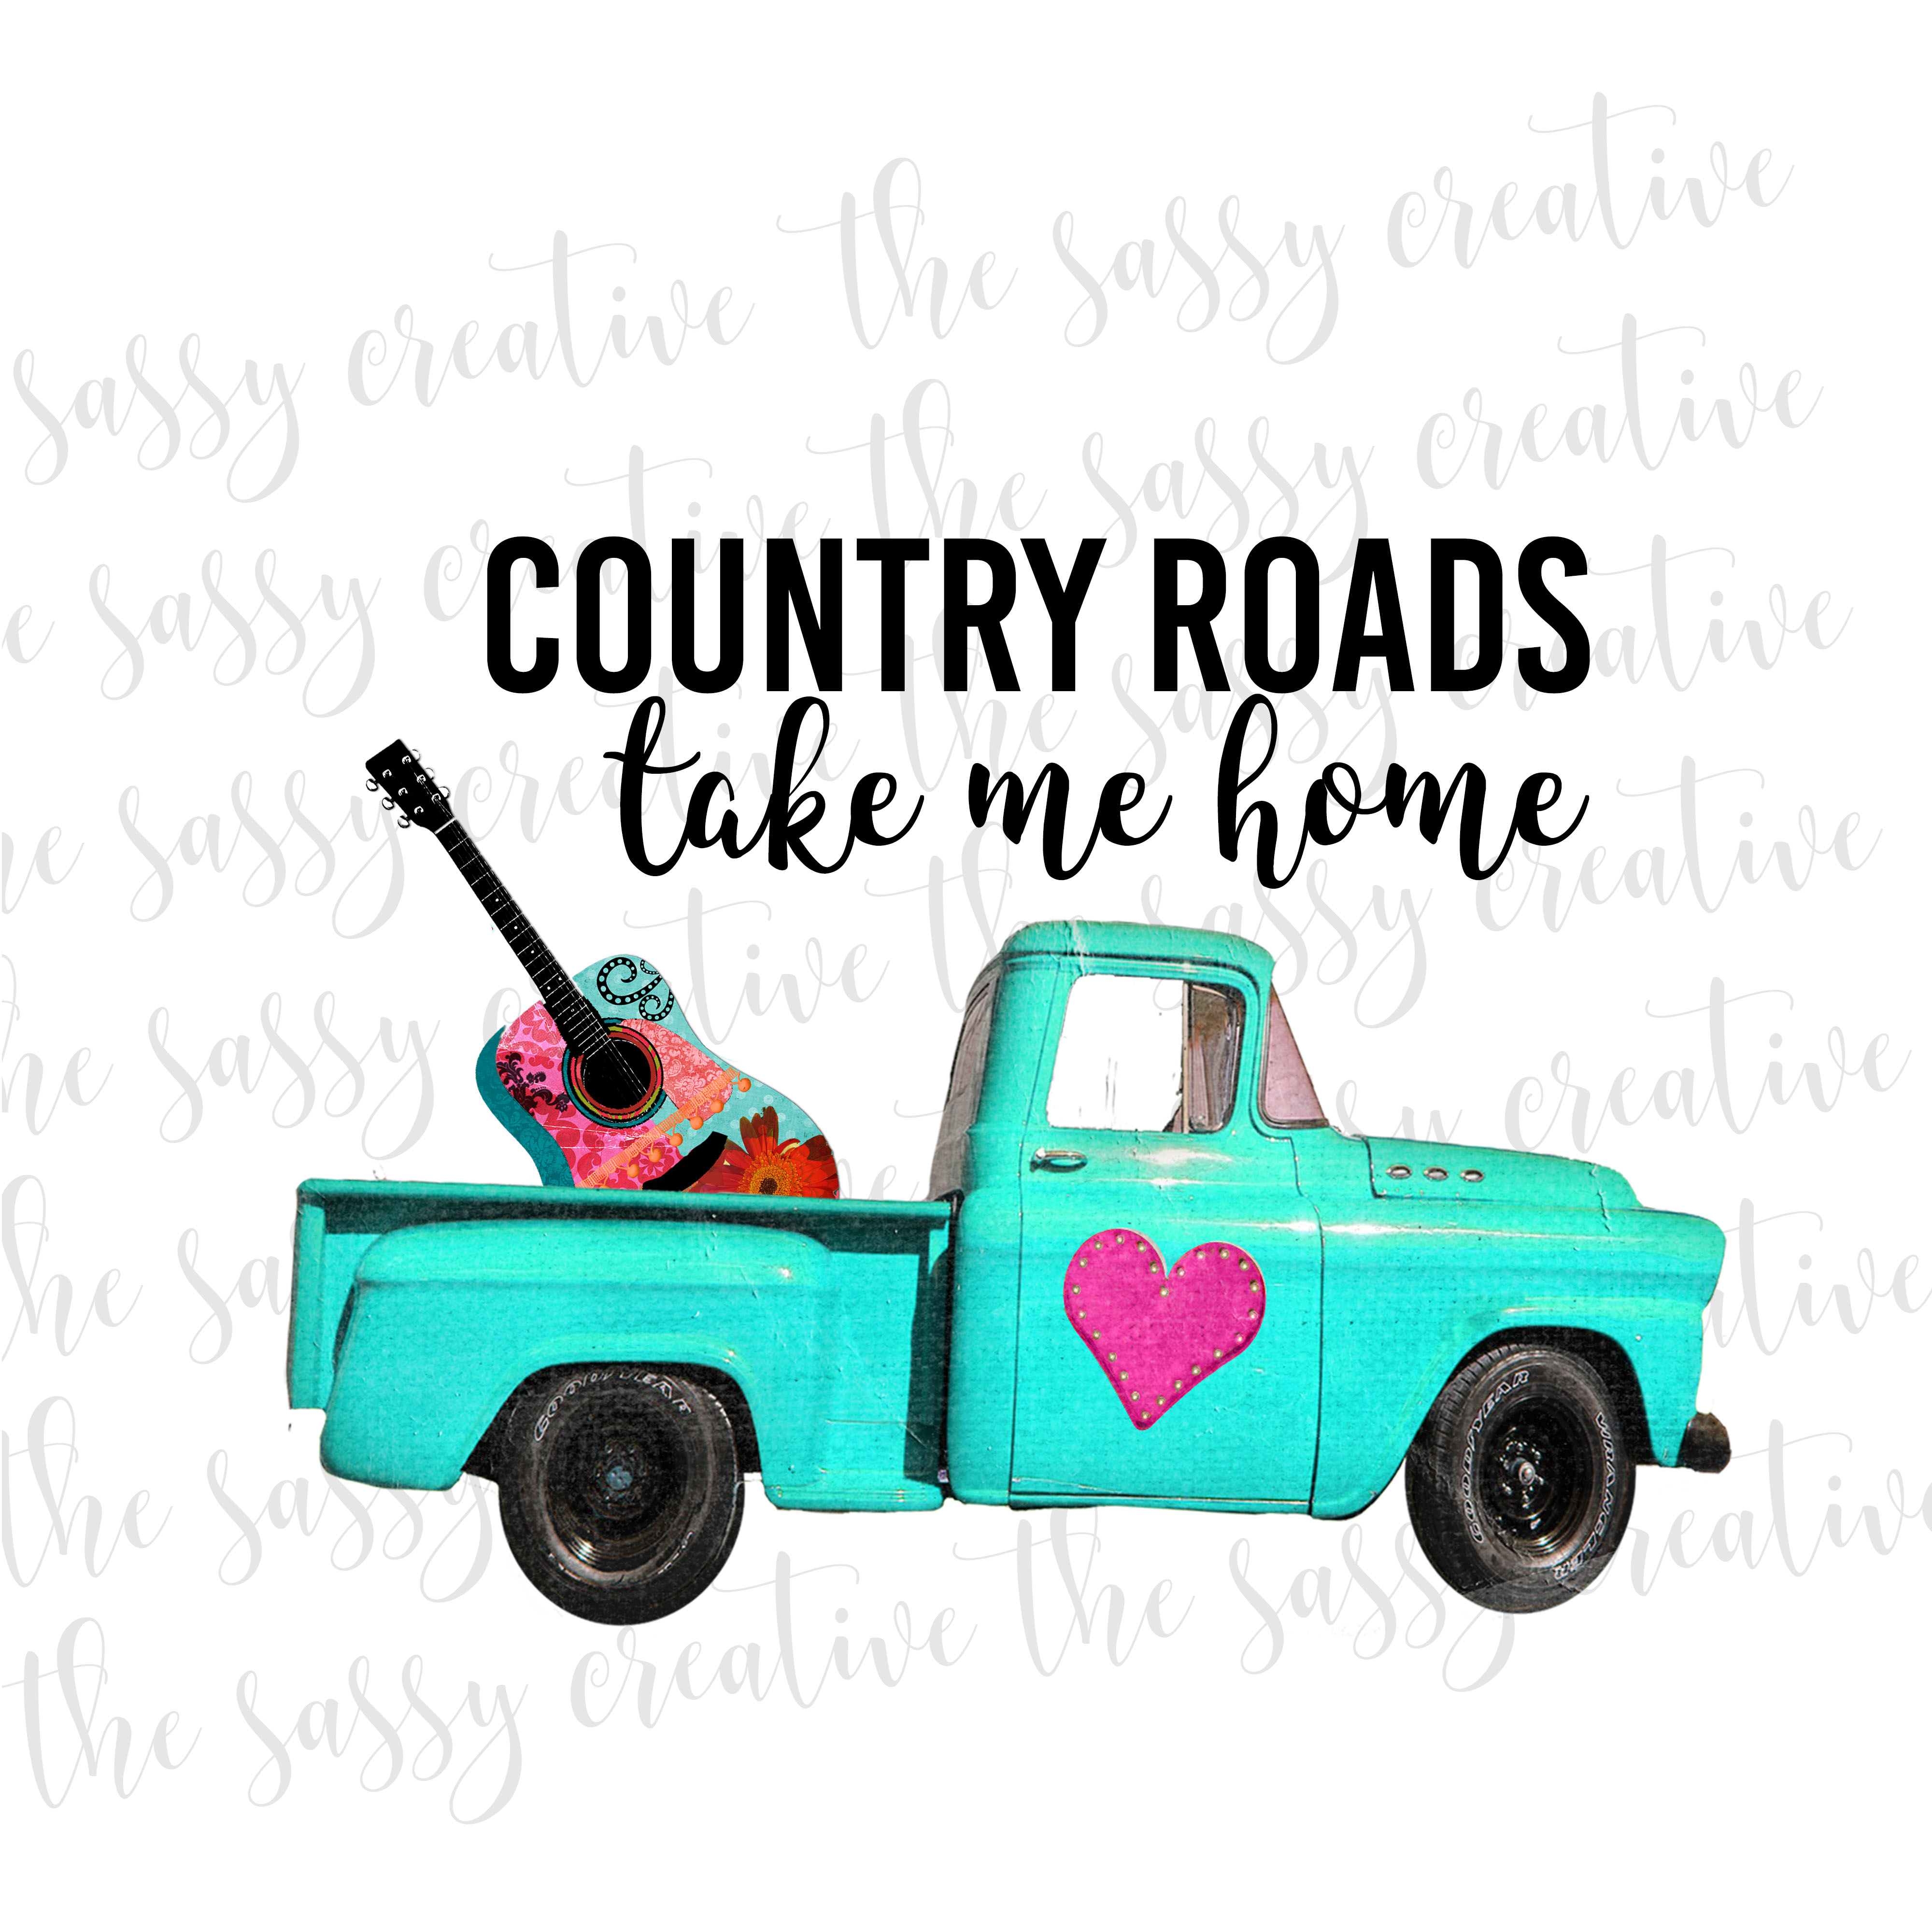 Country Roads Take Me Home Cover